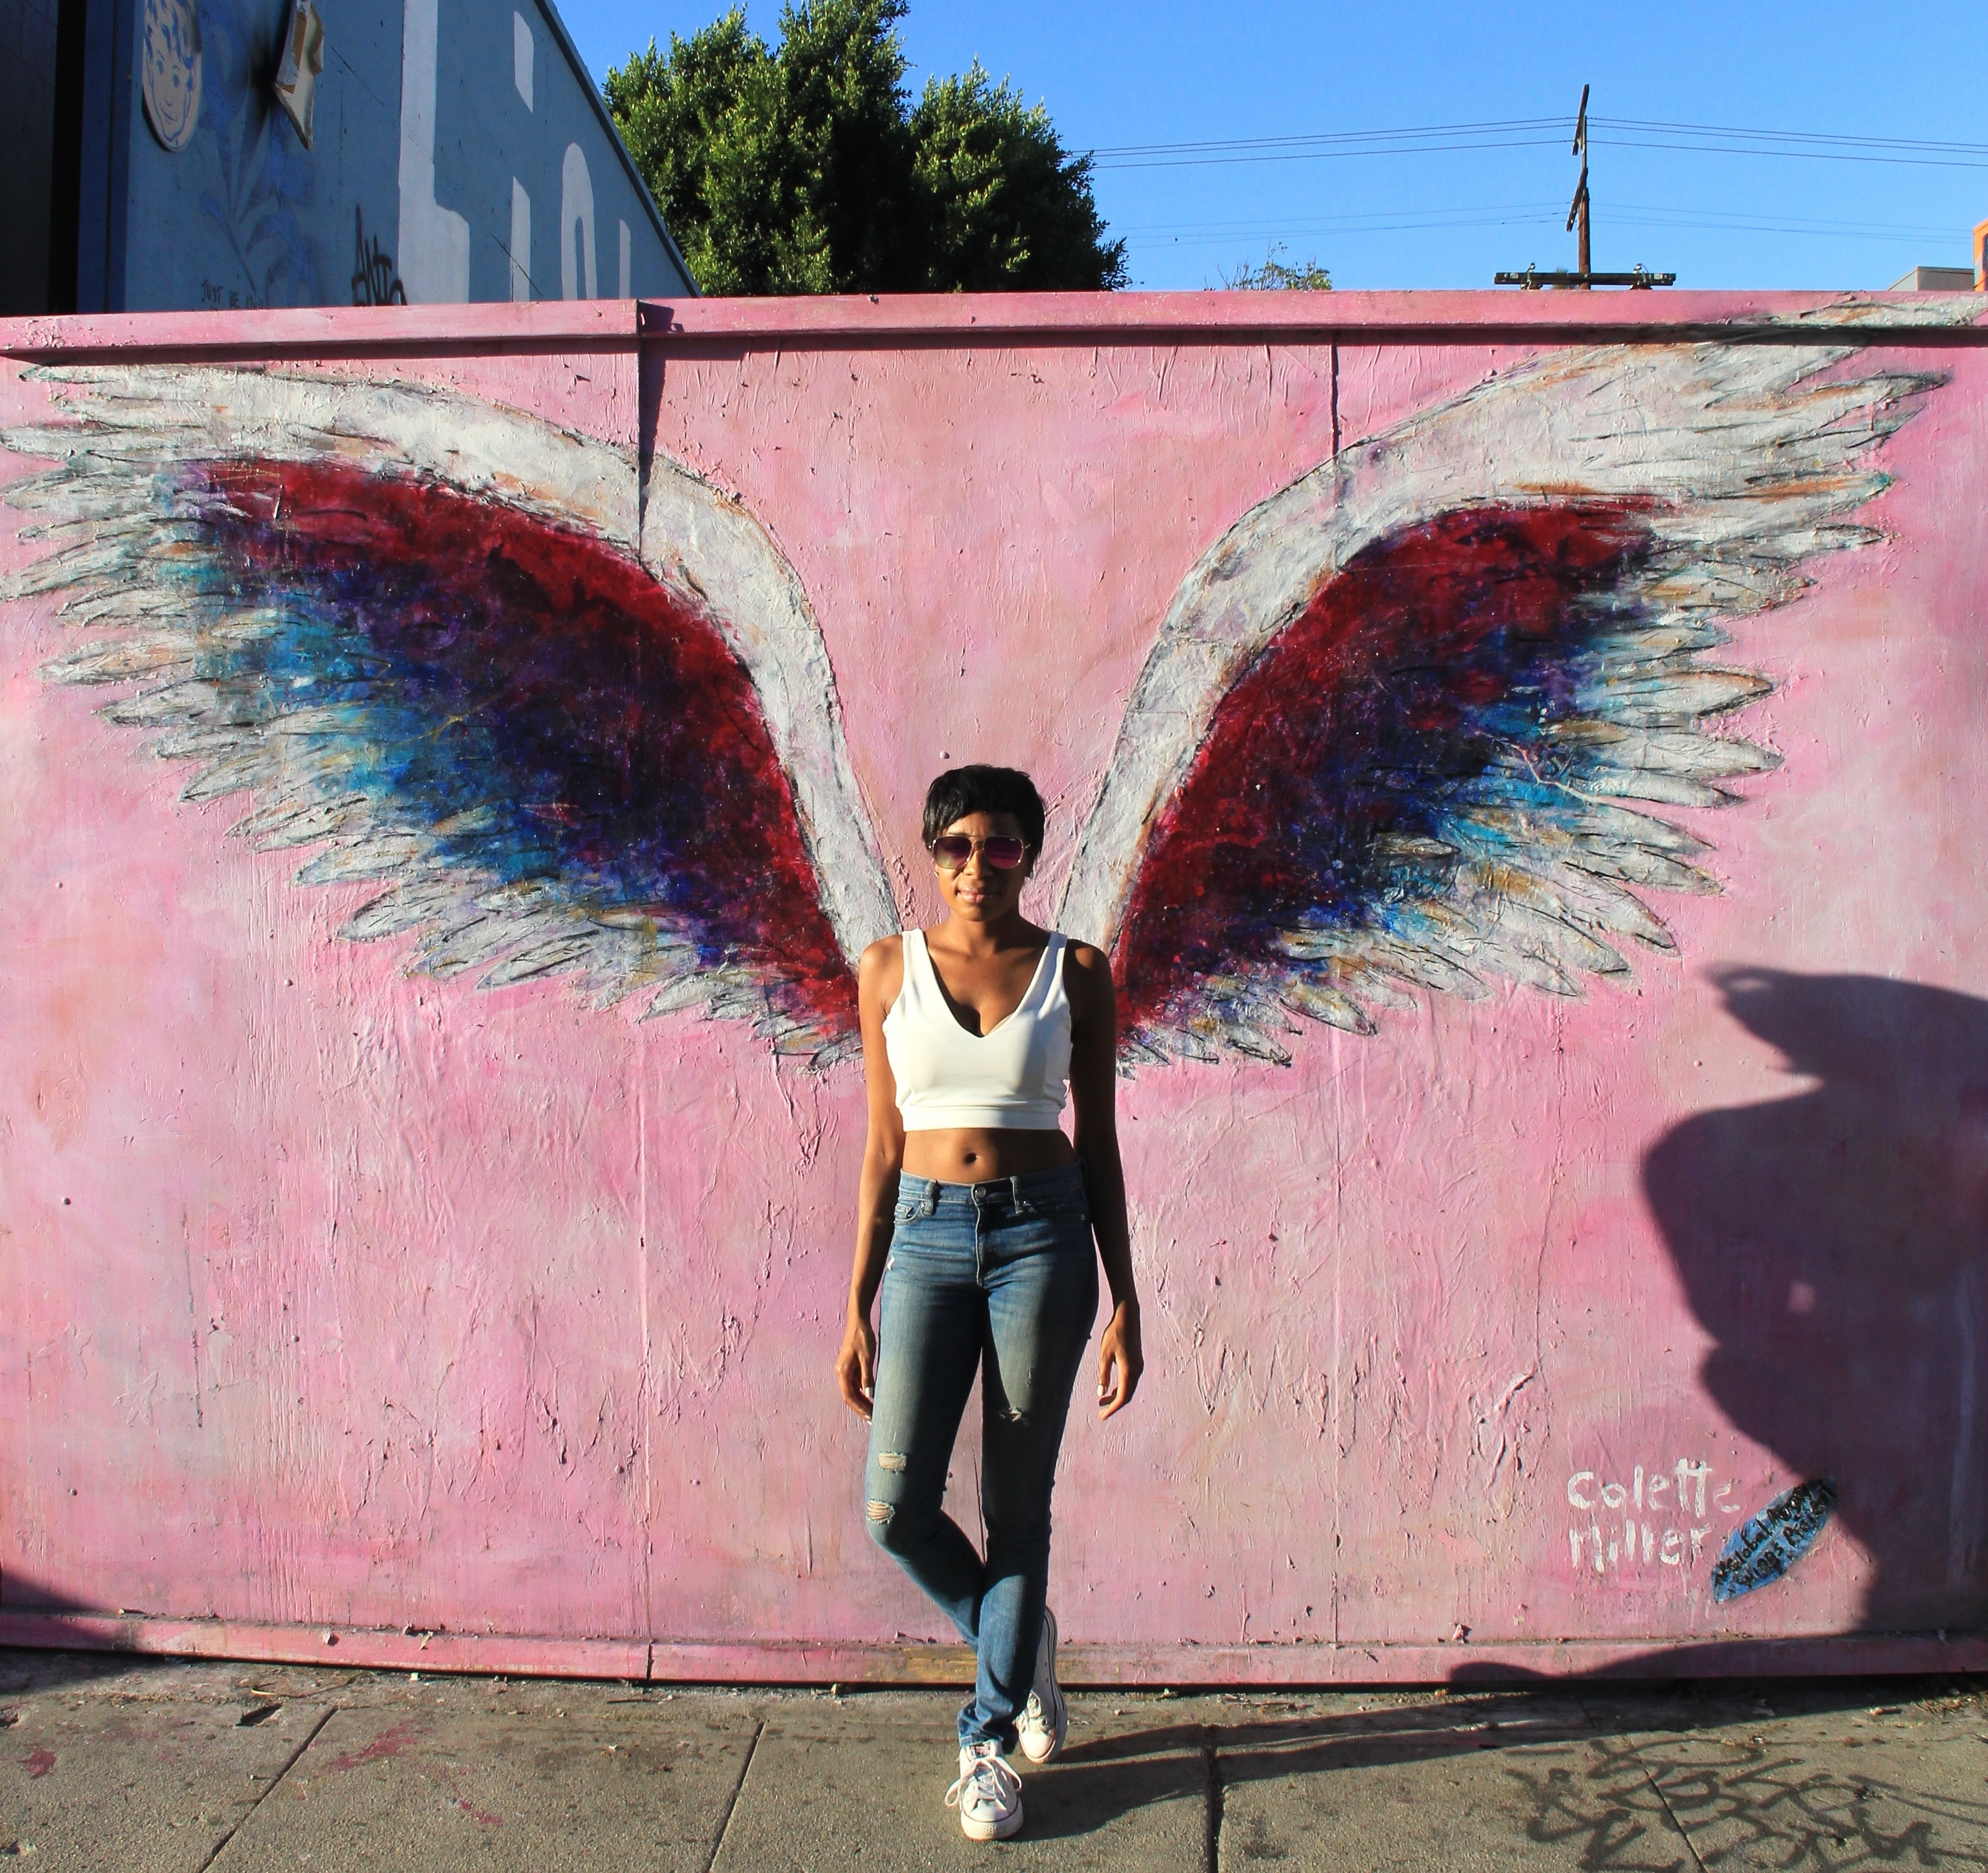 5 Insta Worthy Walls On Melrose Ave In Los Angeles – Throughout Los Angeles Wall Art (View 12 of 20)